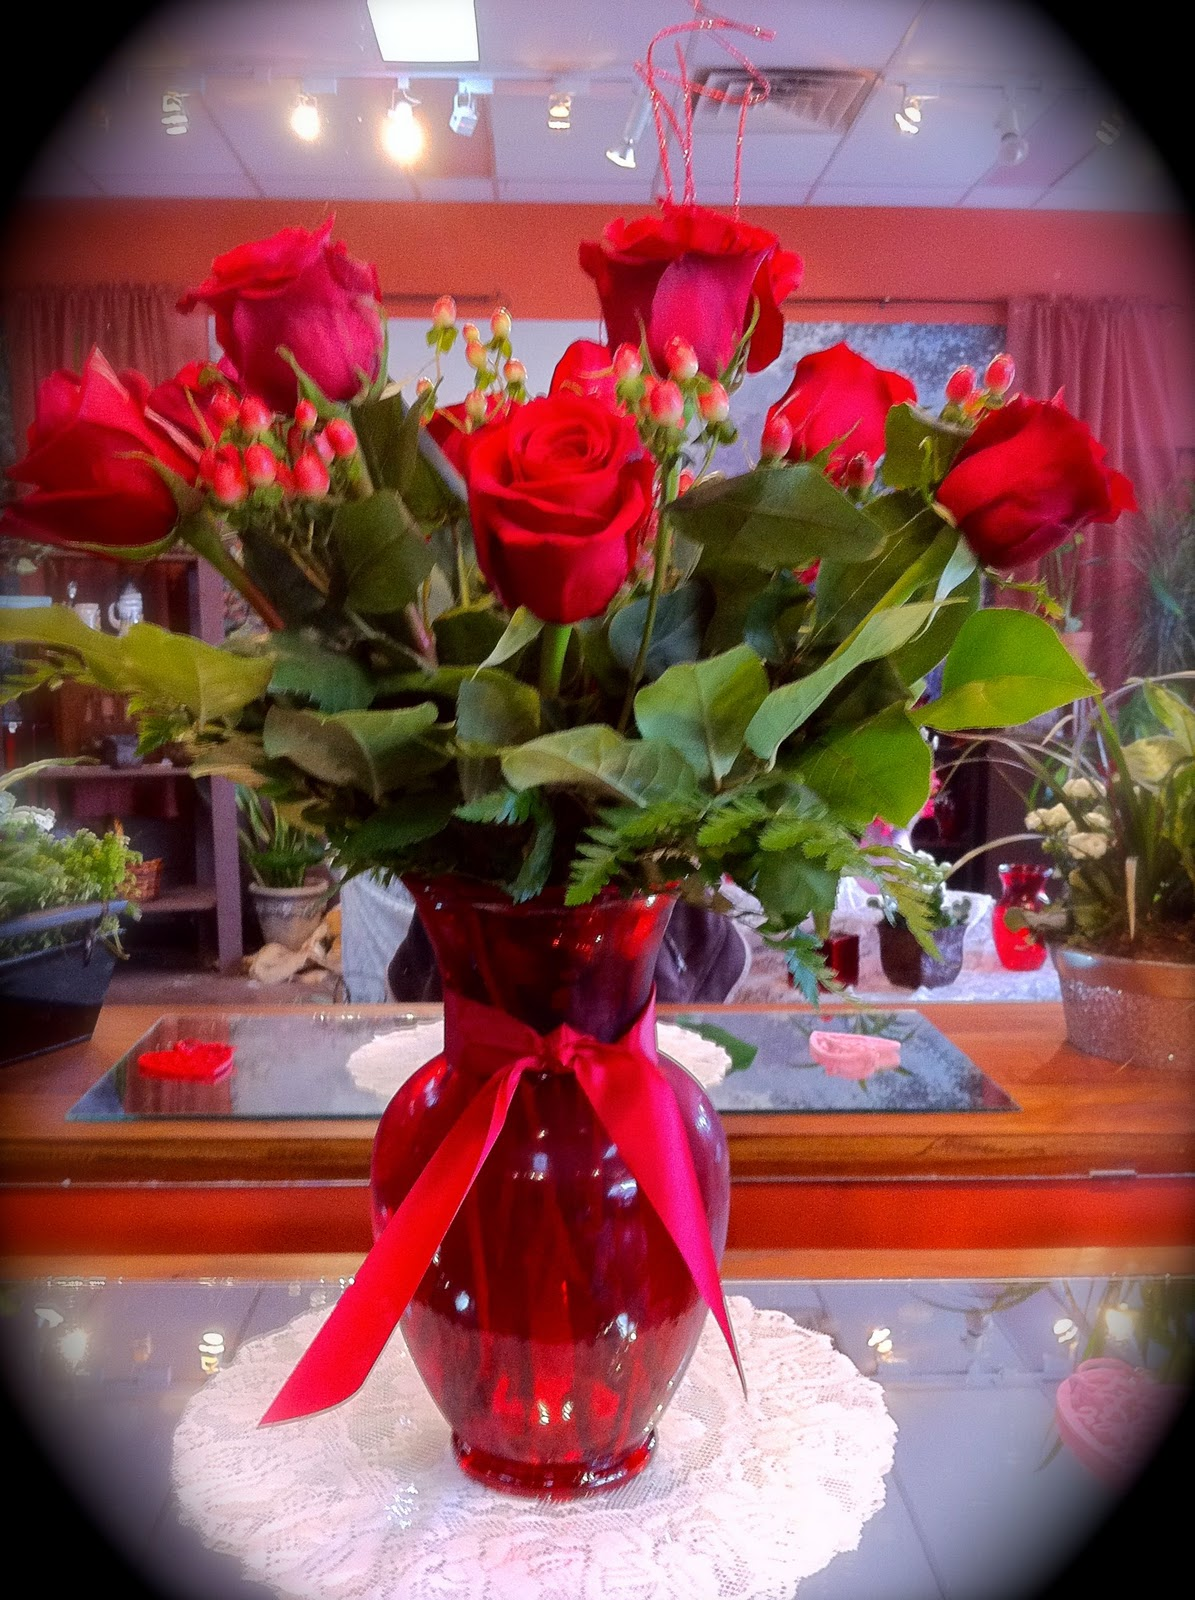 Valentines day bouquets beautiful red roses free wallpaper downloads beautiful roses are making the bouquet so pleasant izmirmasajfo